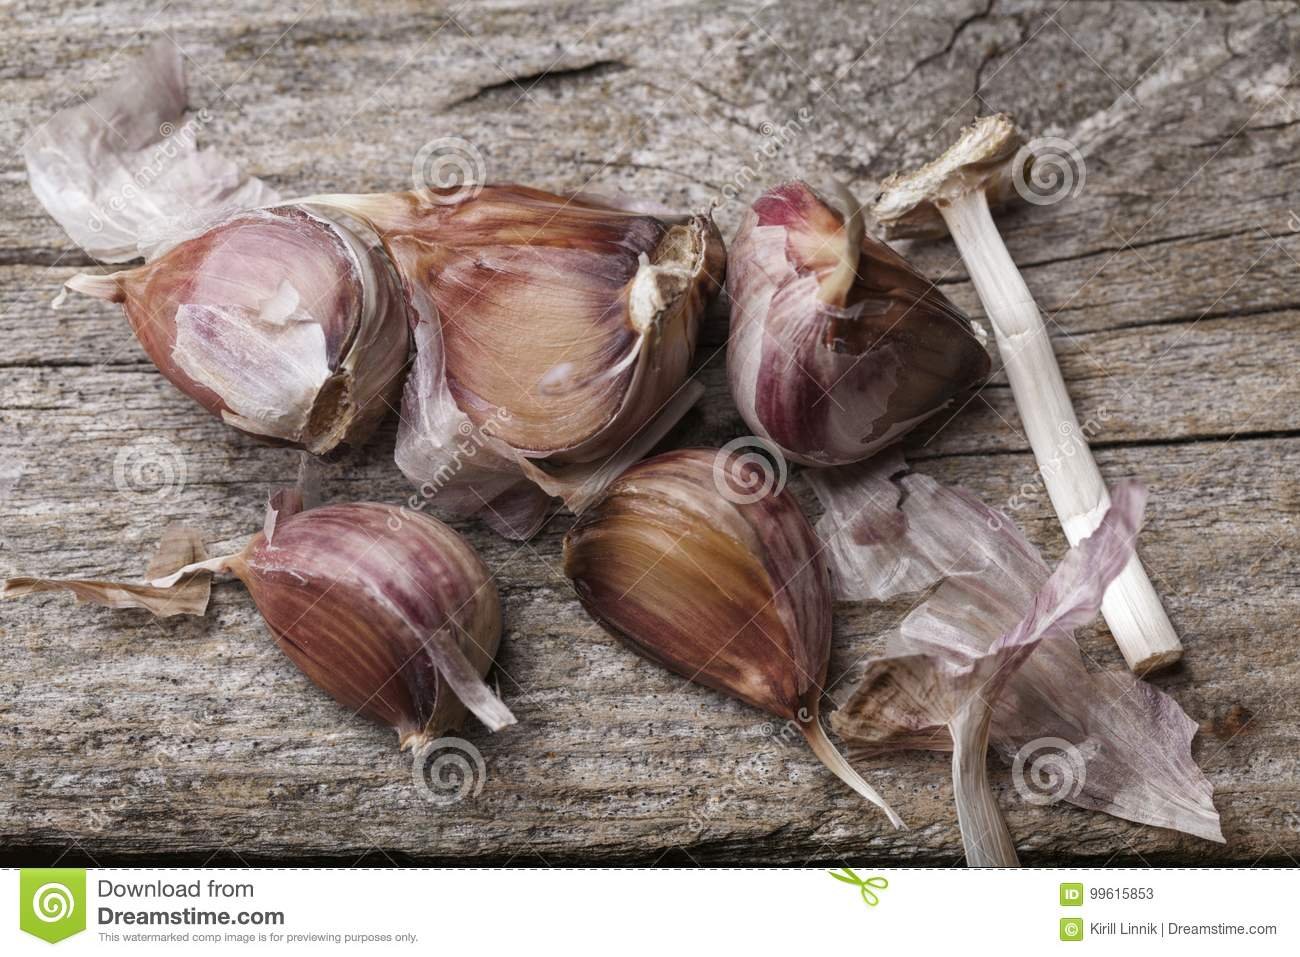 Download Garlic on the table stock image. Image of fresh, background - 99615853